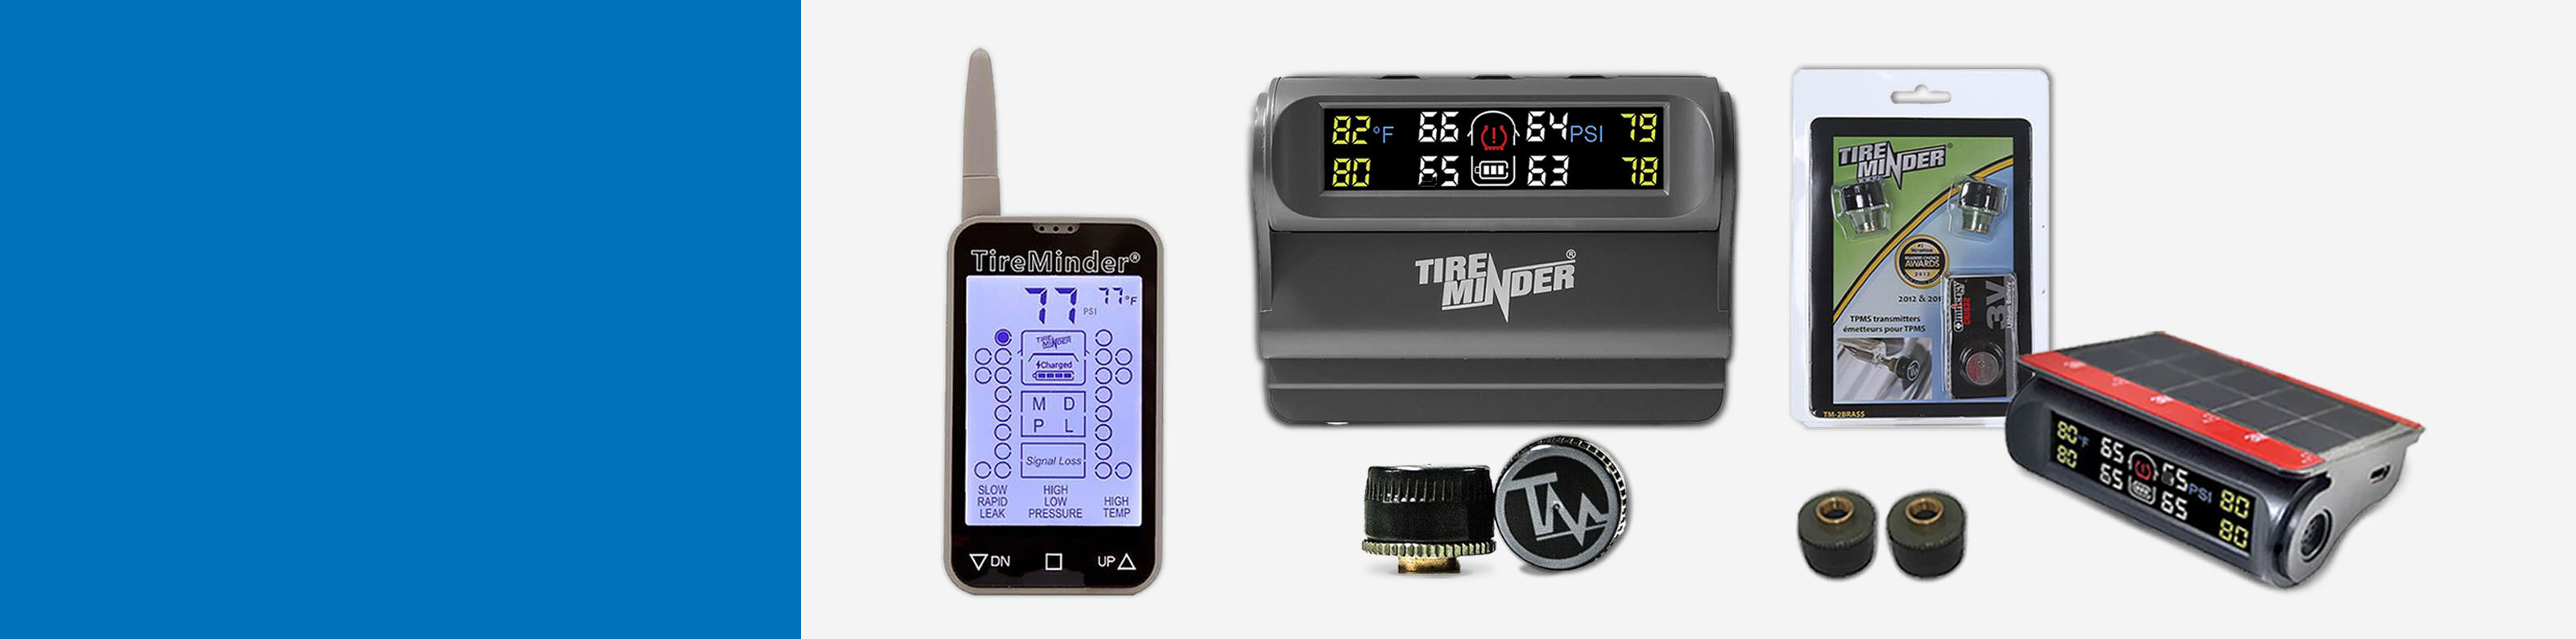 Up to $100 off Tire Pressure Monitoring Systems